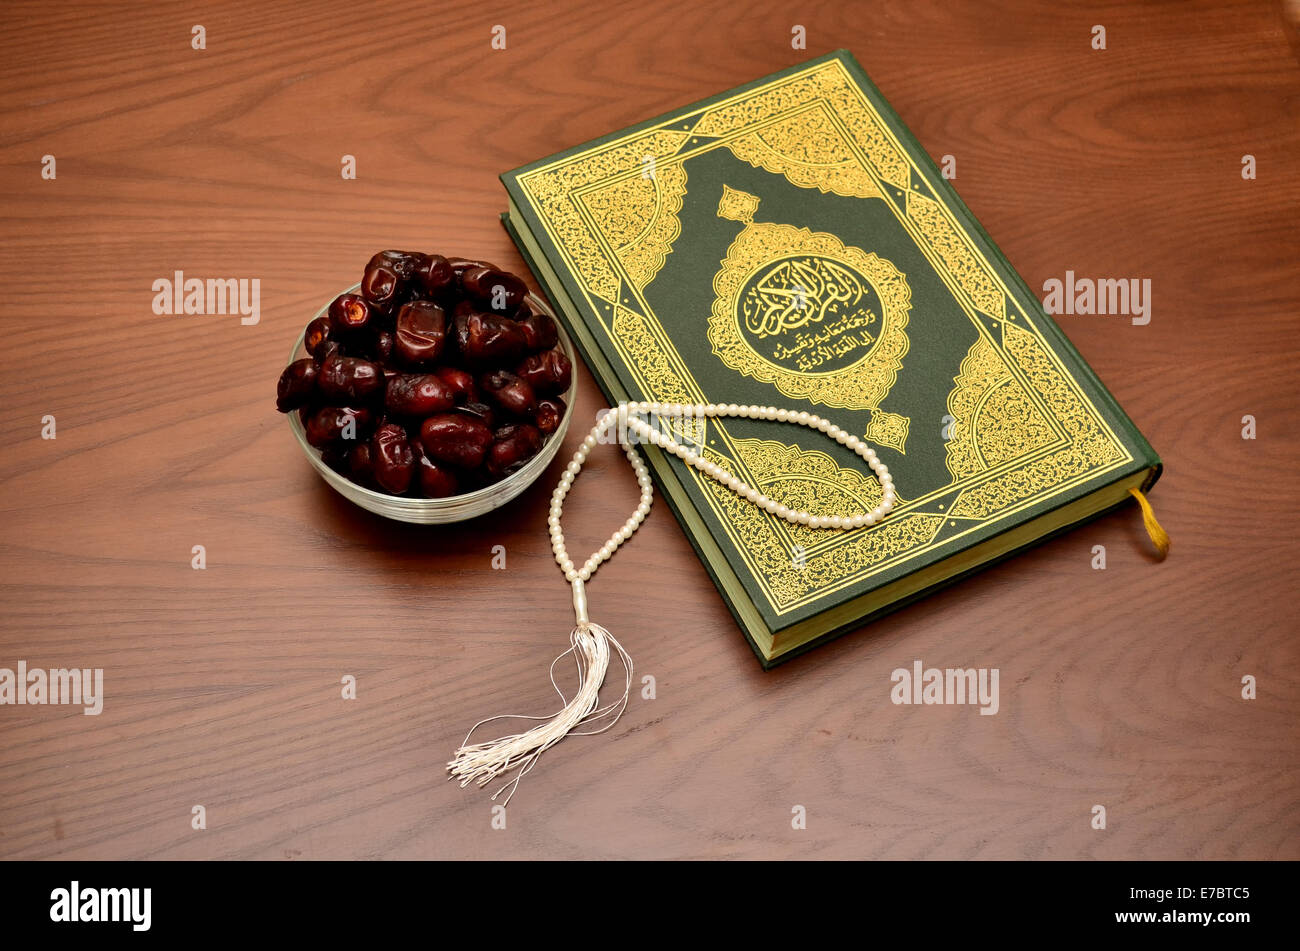 Quran - The Holy Book of Islam - Stock Image